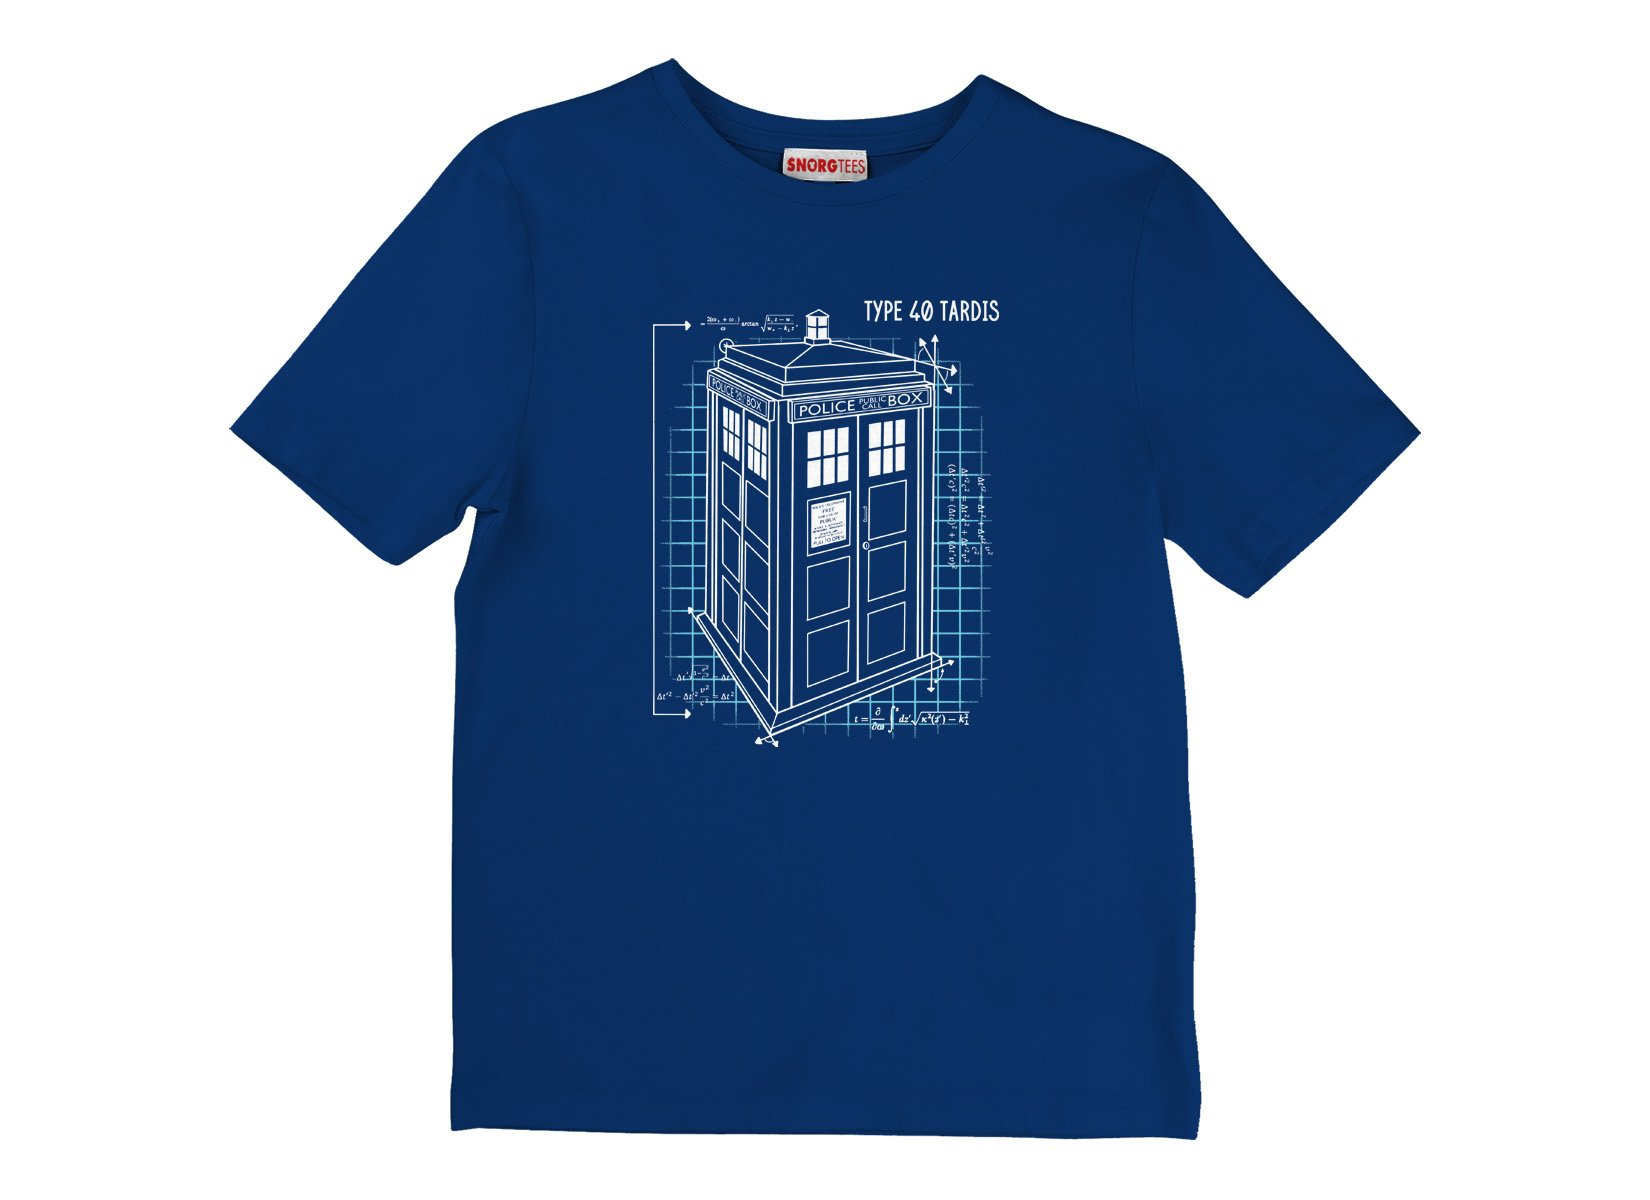 Type 40 Tardis on Kids T-Shirt